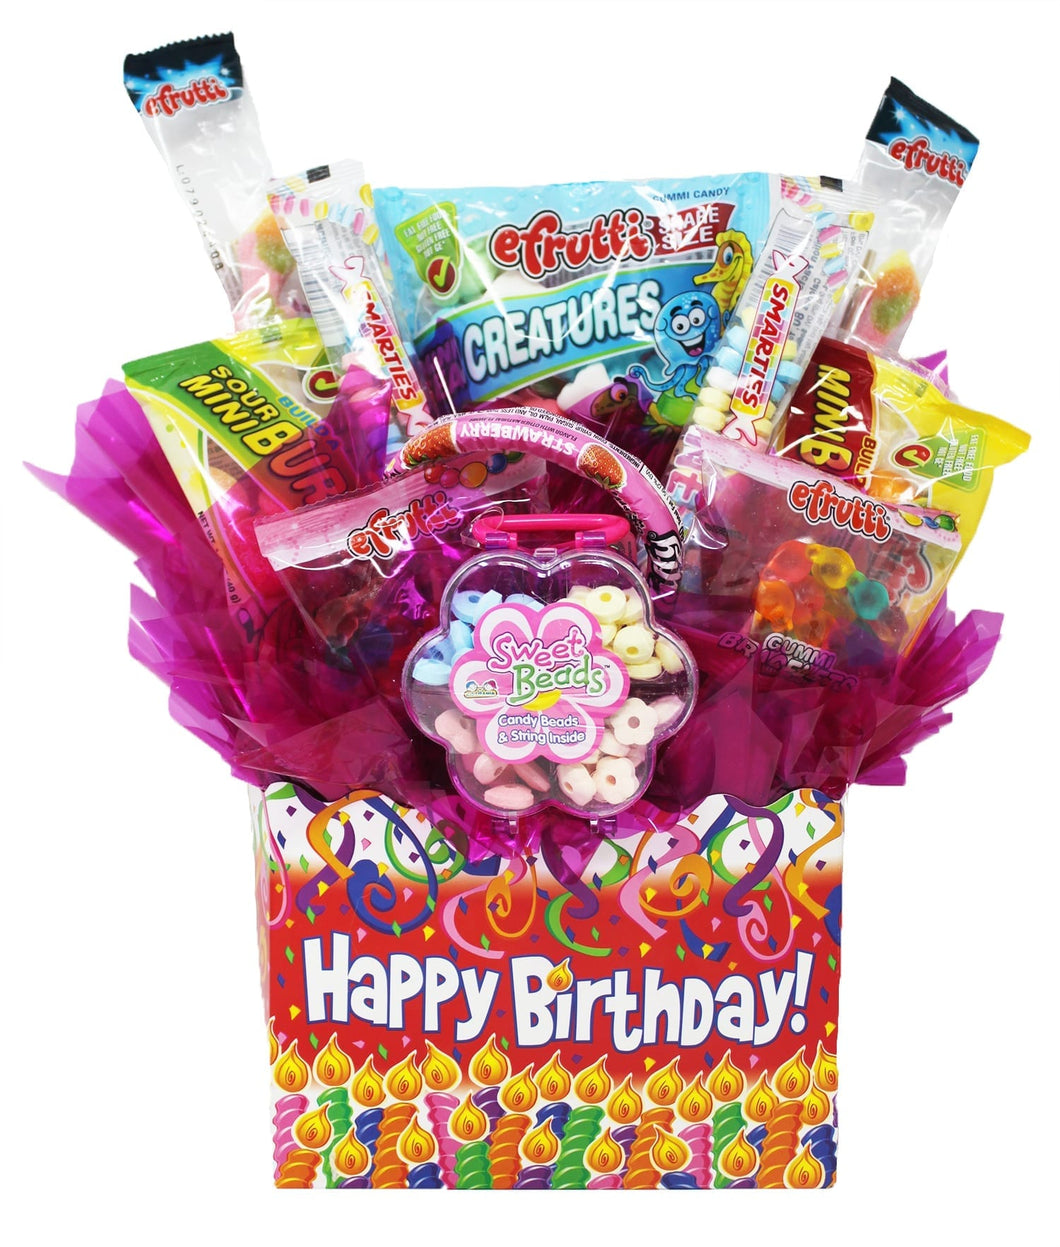 Gluten Free Happy Birthday Box Front Pk